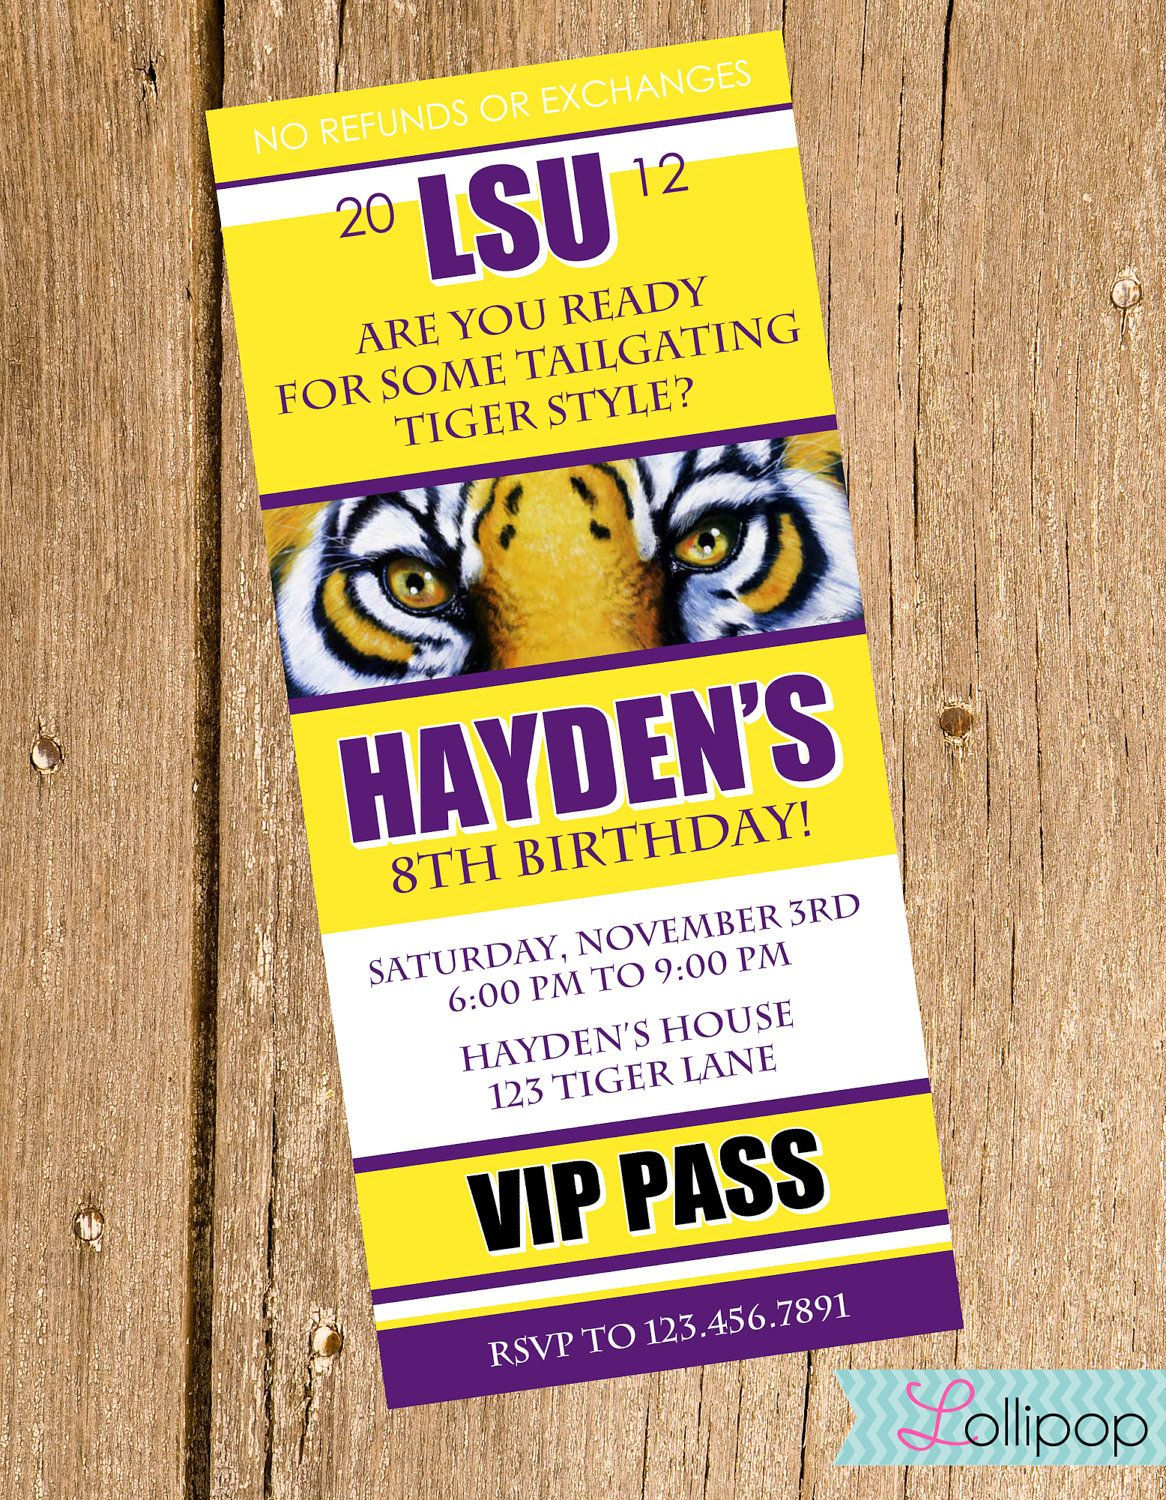 LSU Tailgating Birthday Party Invitations, Ticket Style Printable ...